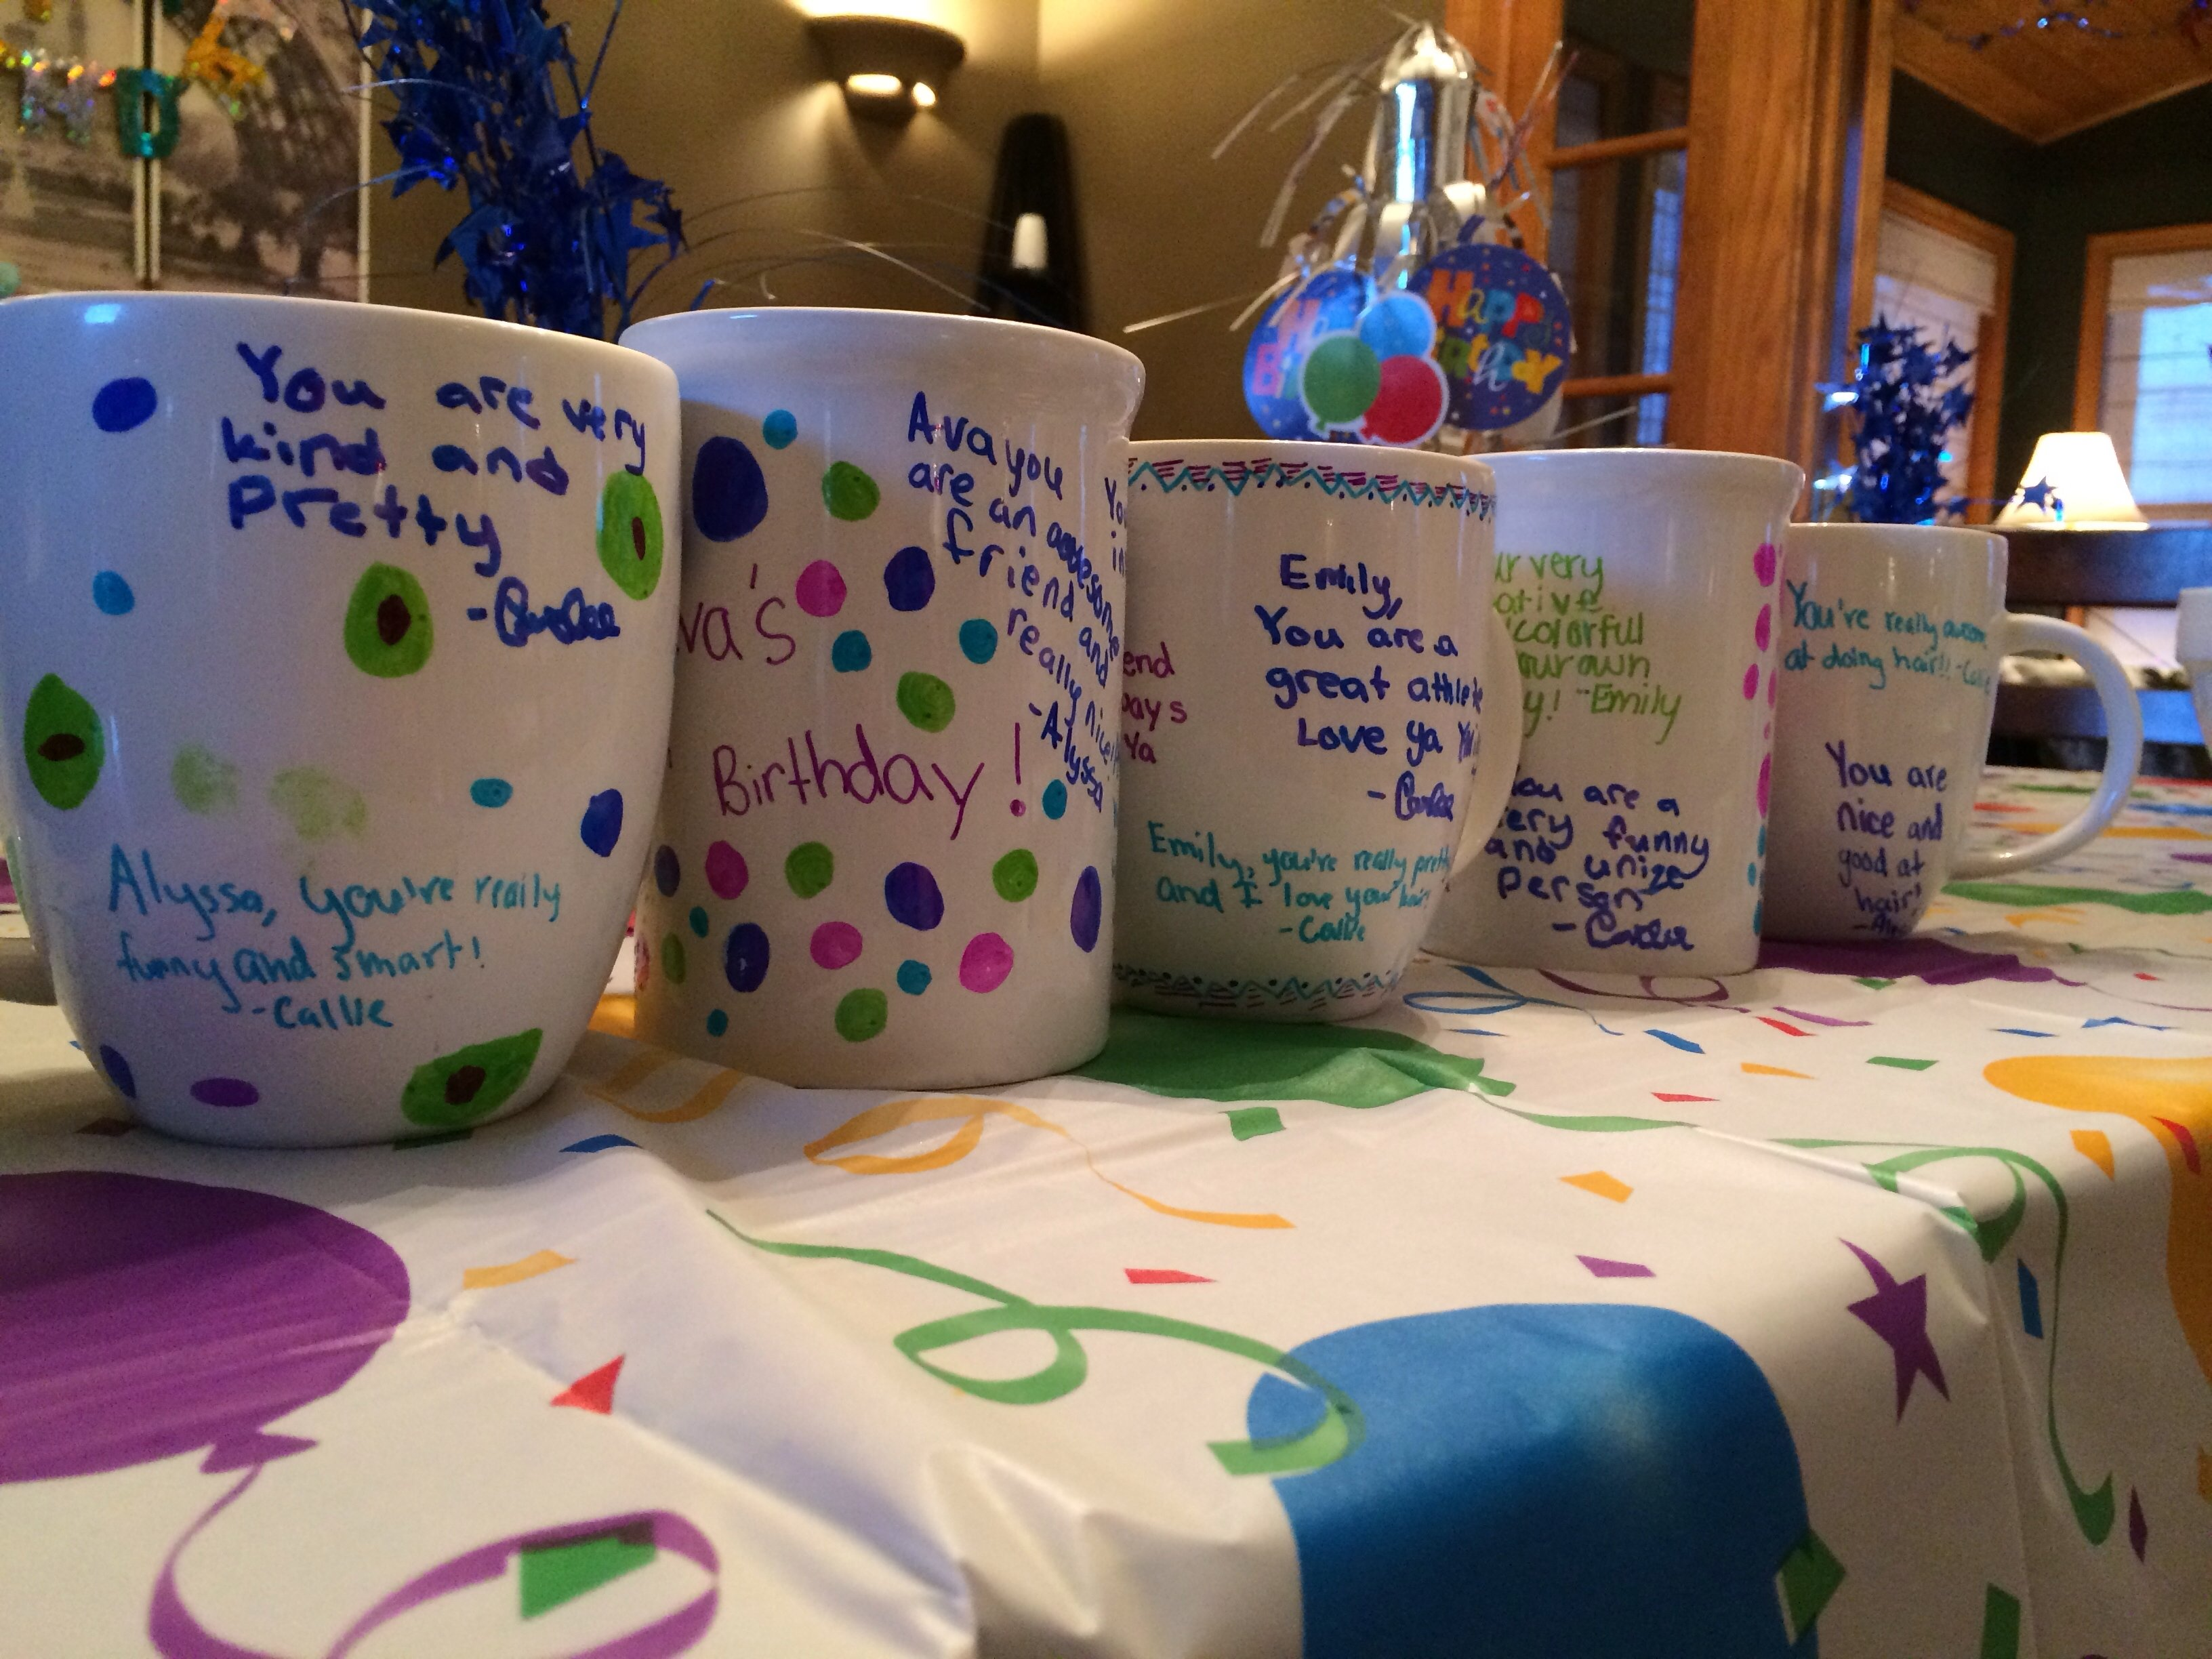 10 Trendy Birthday Party Ideas For 12 Yr Old Girl slumber party invitation ideas homemade sharpie mugs birthday fun 4 2020